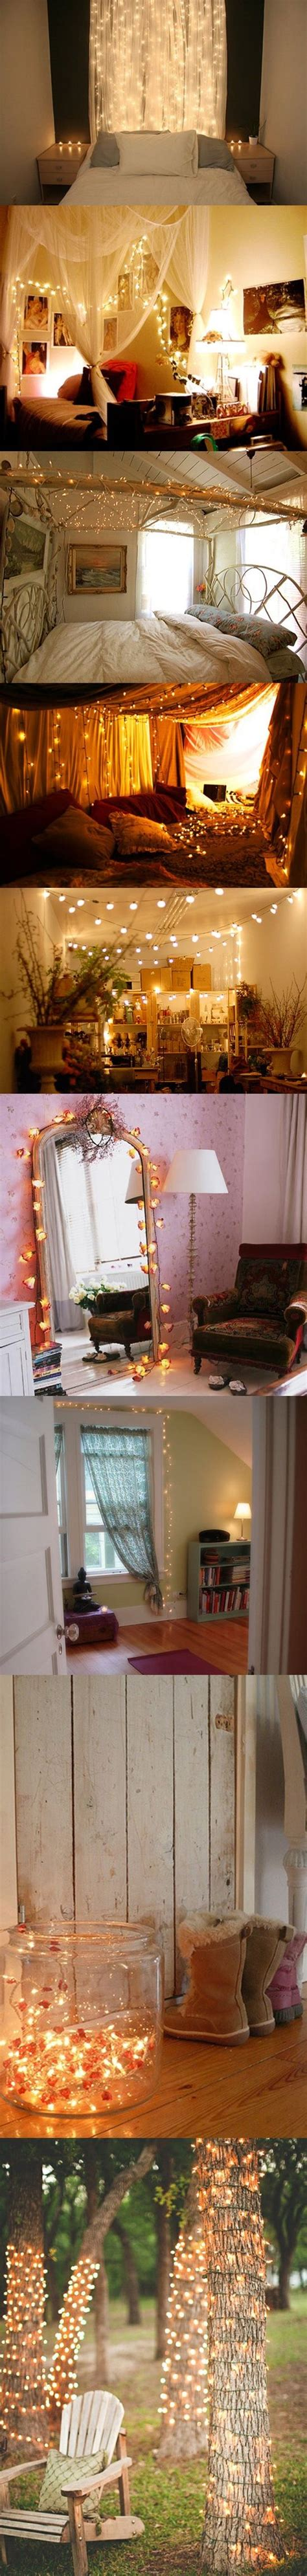 string lights design and decorating ideas on